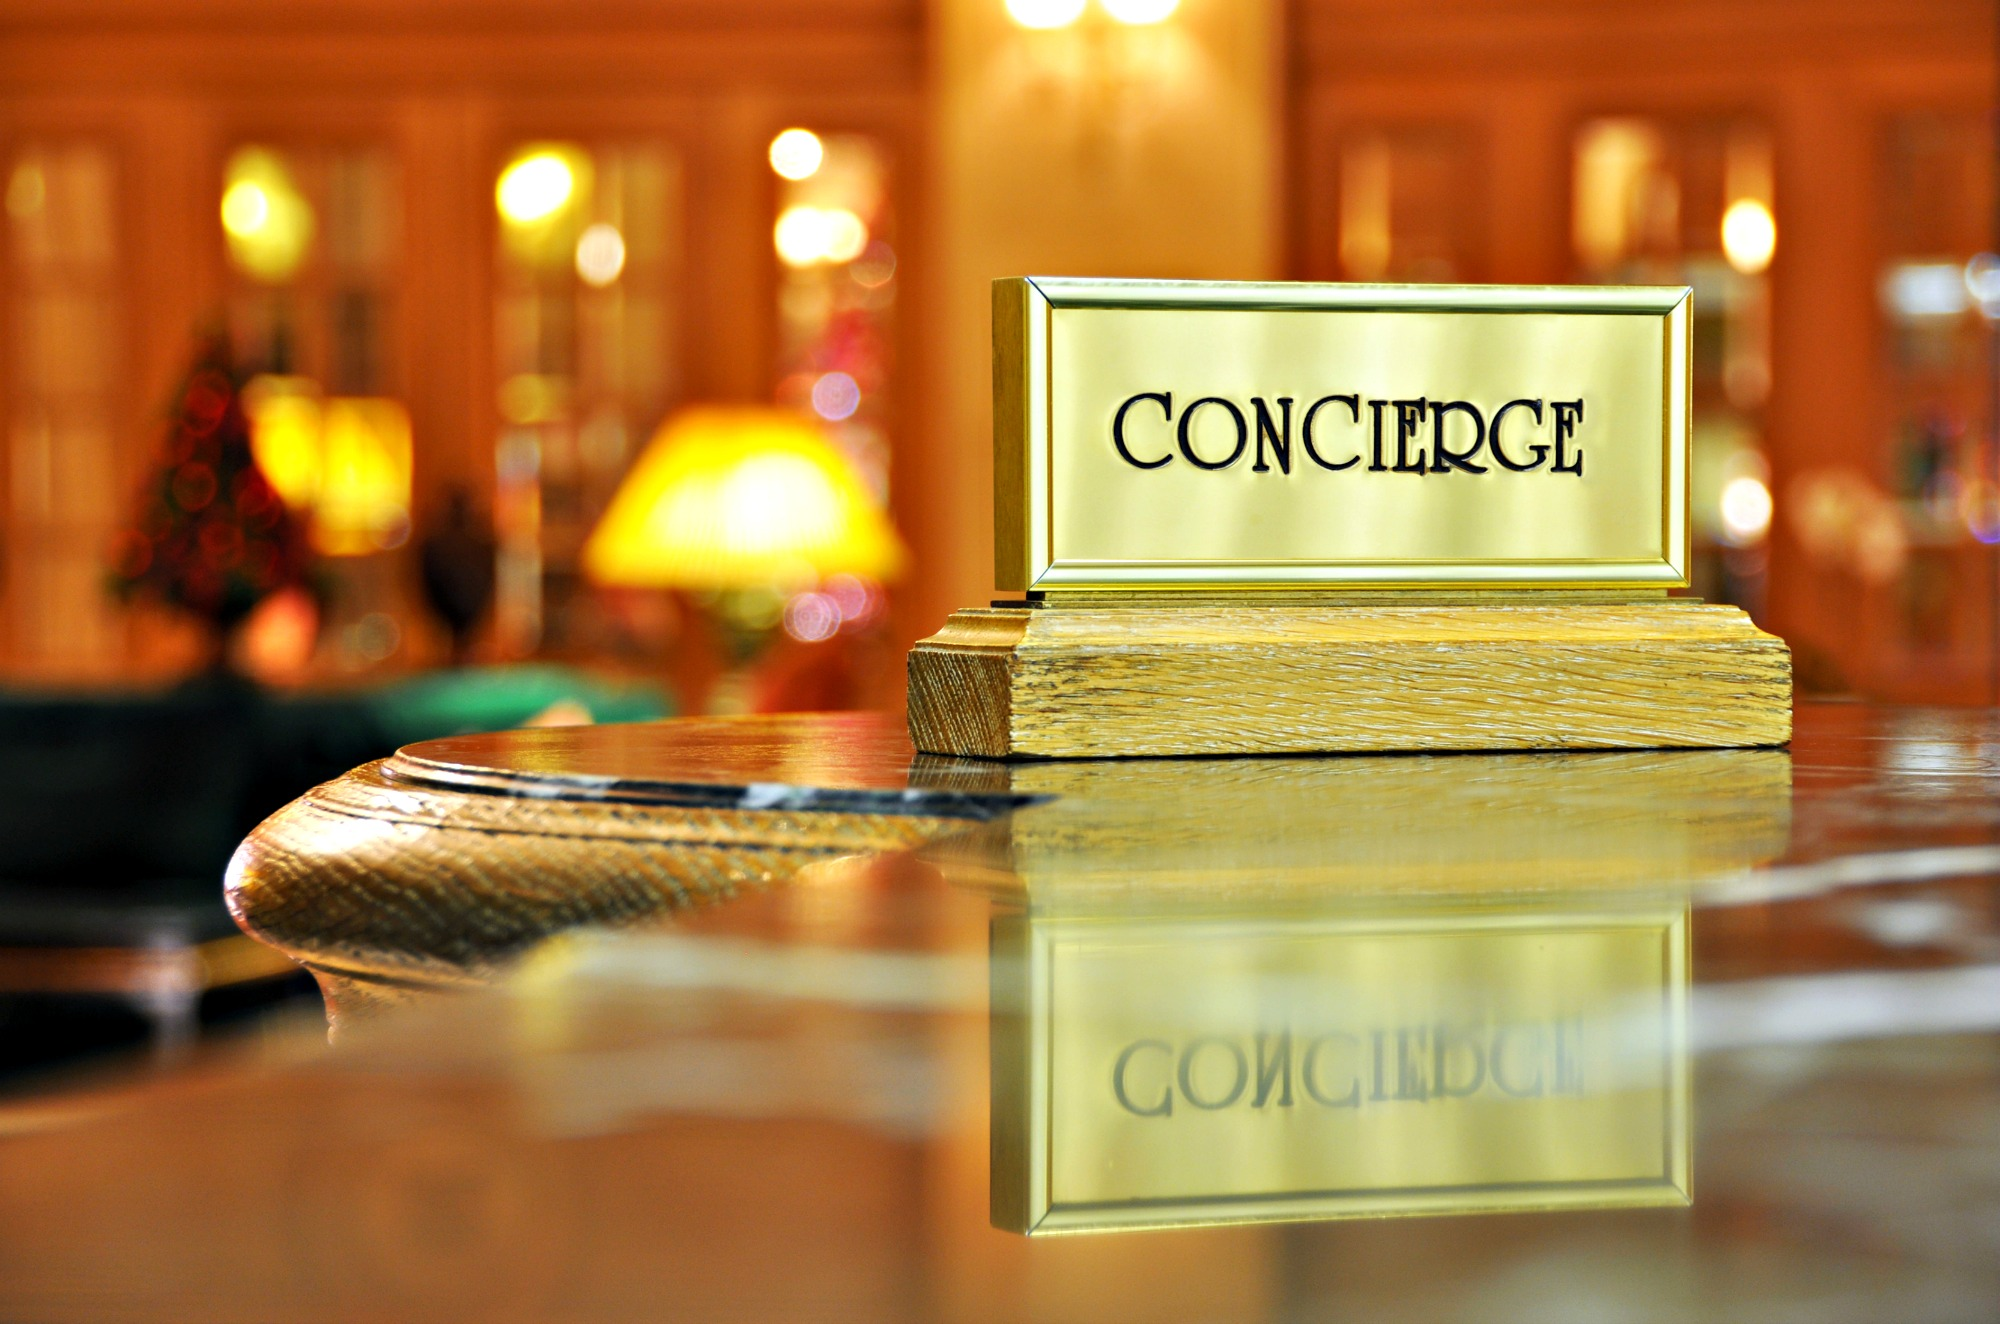 Brass concierge sign at lobby check-in desk